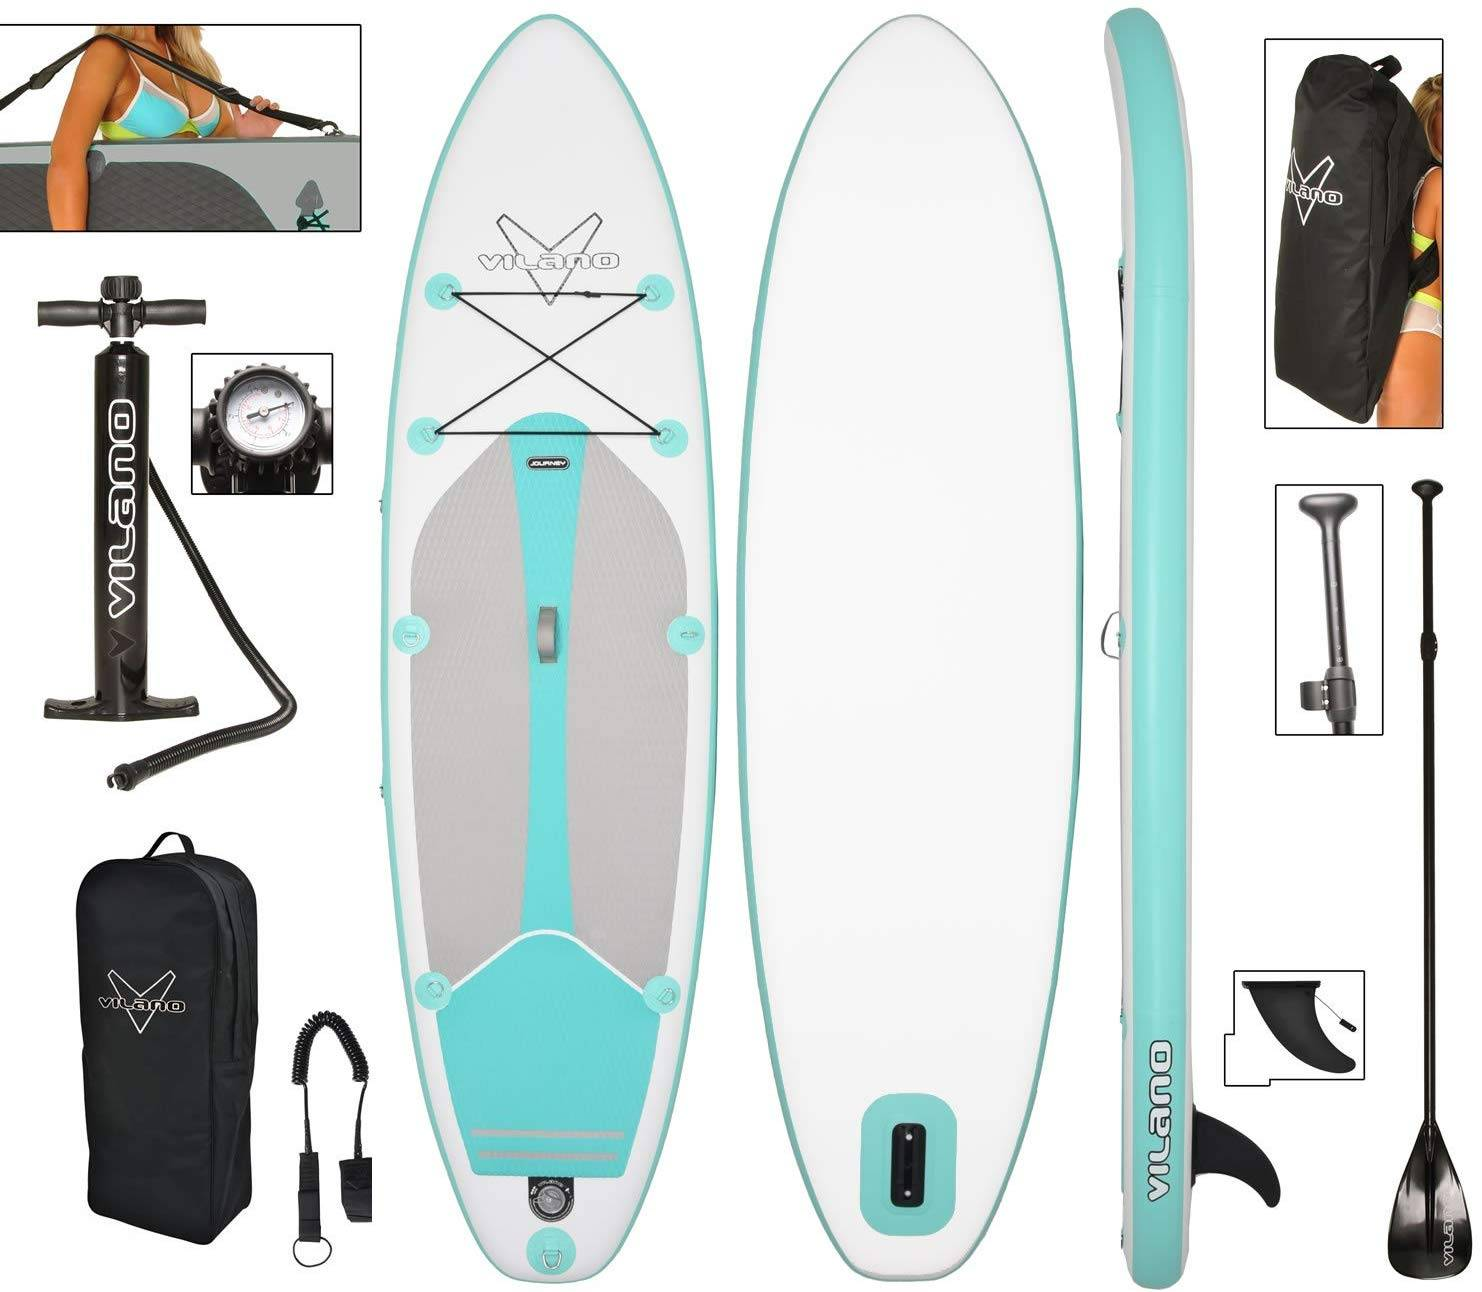 Vilano Journey Inflatable Stand Up Paddle Board Kit - image Vilano-Journey-Inflatable-Stand-Up-Paddle-Board-Kit on https://supboardgear.com